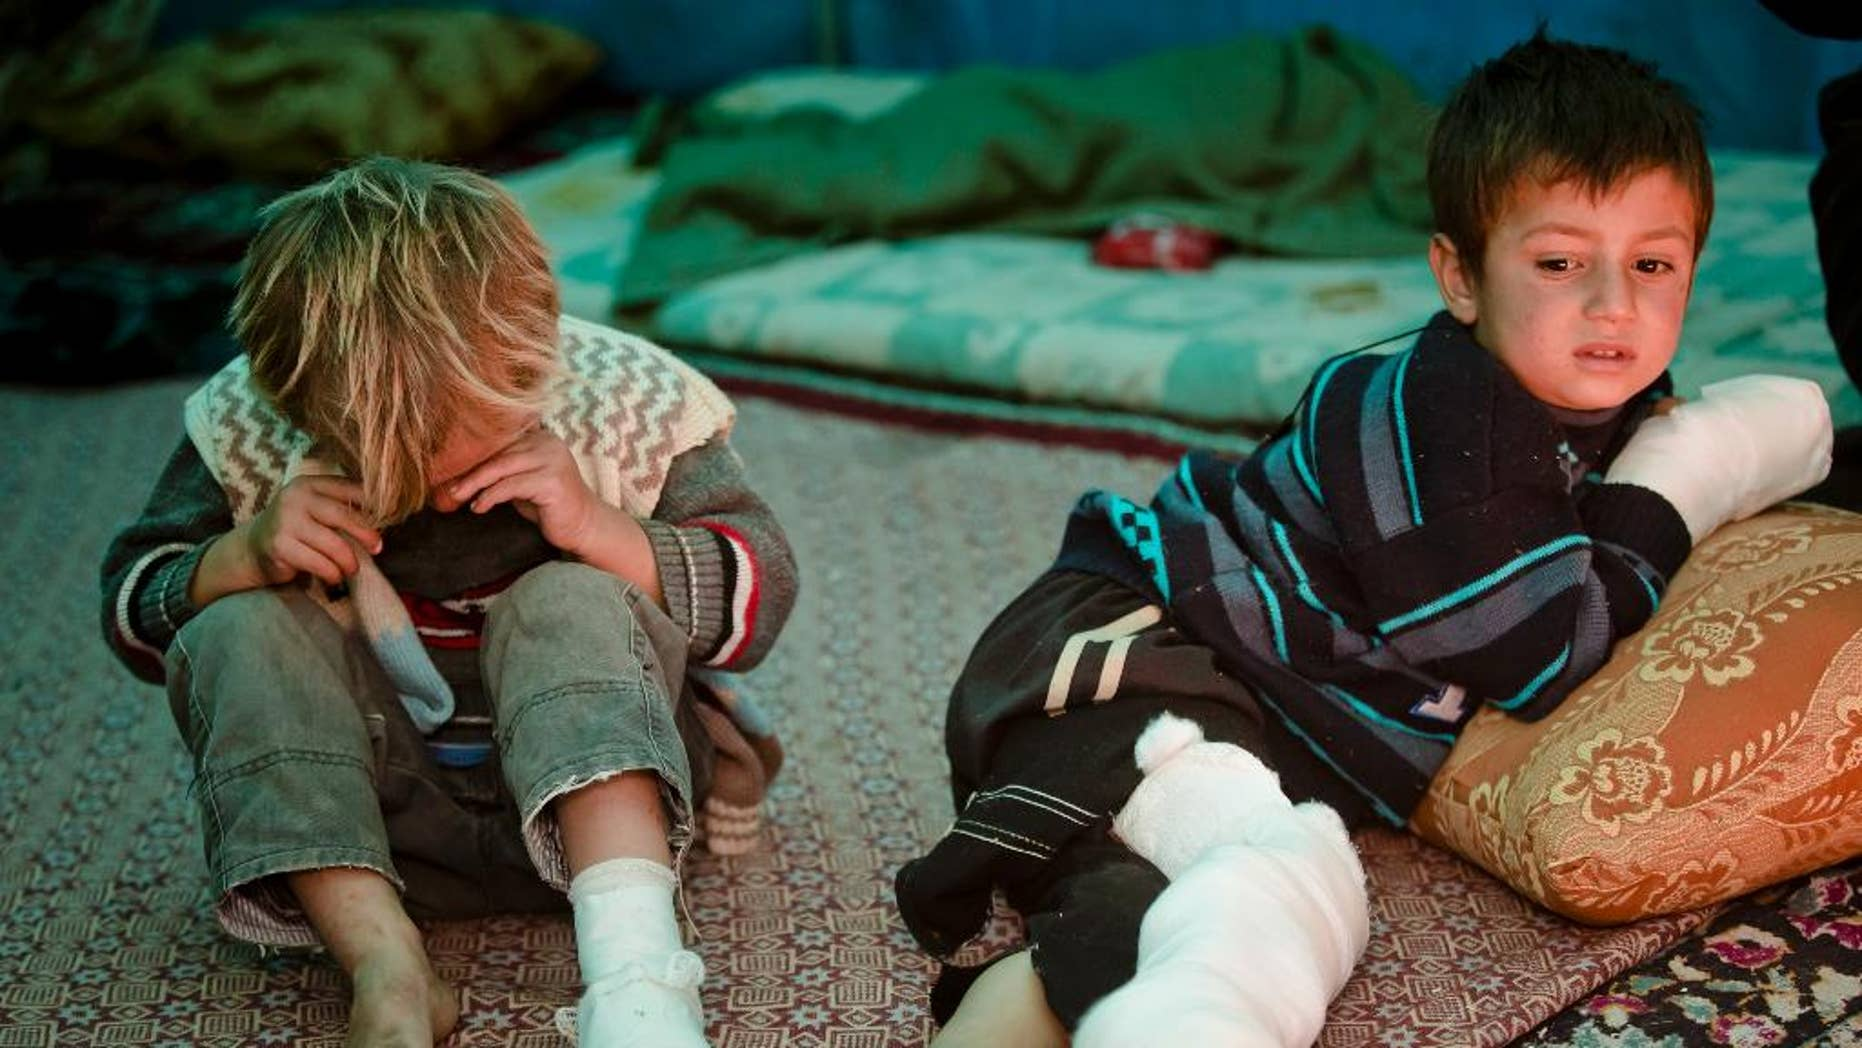 Mahmut Munir, 8 years-old, right, a Syrian Kurdish refugee boy from Kobani and his 5 year-old brother Mahmut, left, who were injured along with other family members in a mortar attack by forces of the Islamic State group sits in a tent at a camp in Suruc, on the Turkey-Syria border Wednesday, Nov. 19, 2014. Kobani, also known as Ayn Arab, and its surrounding areas, has been under assault by extremists of the Islamic State group since mid-September and is being defended by Kurdish fighters. (AP Photo/Vadim Ghirda)